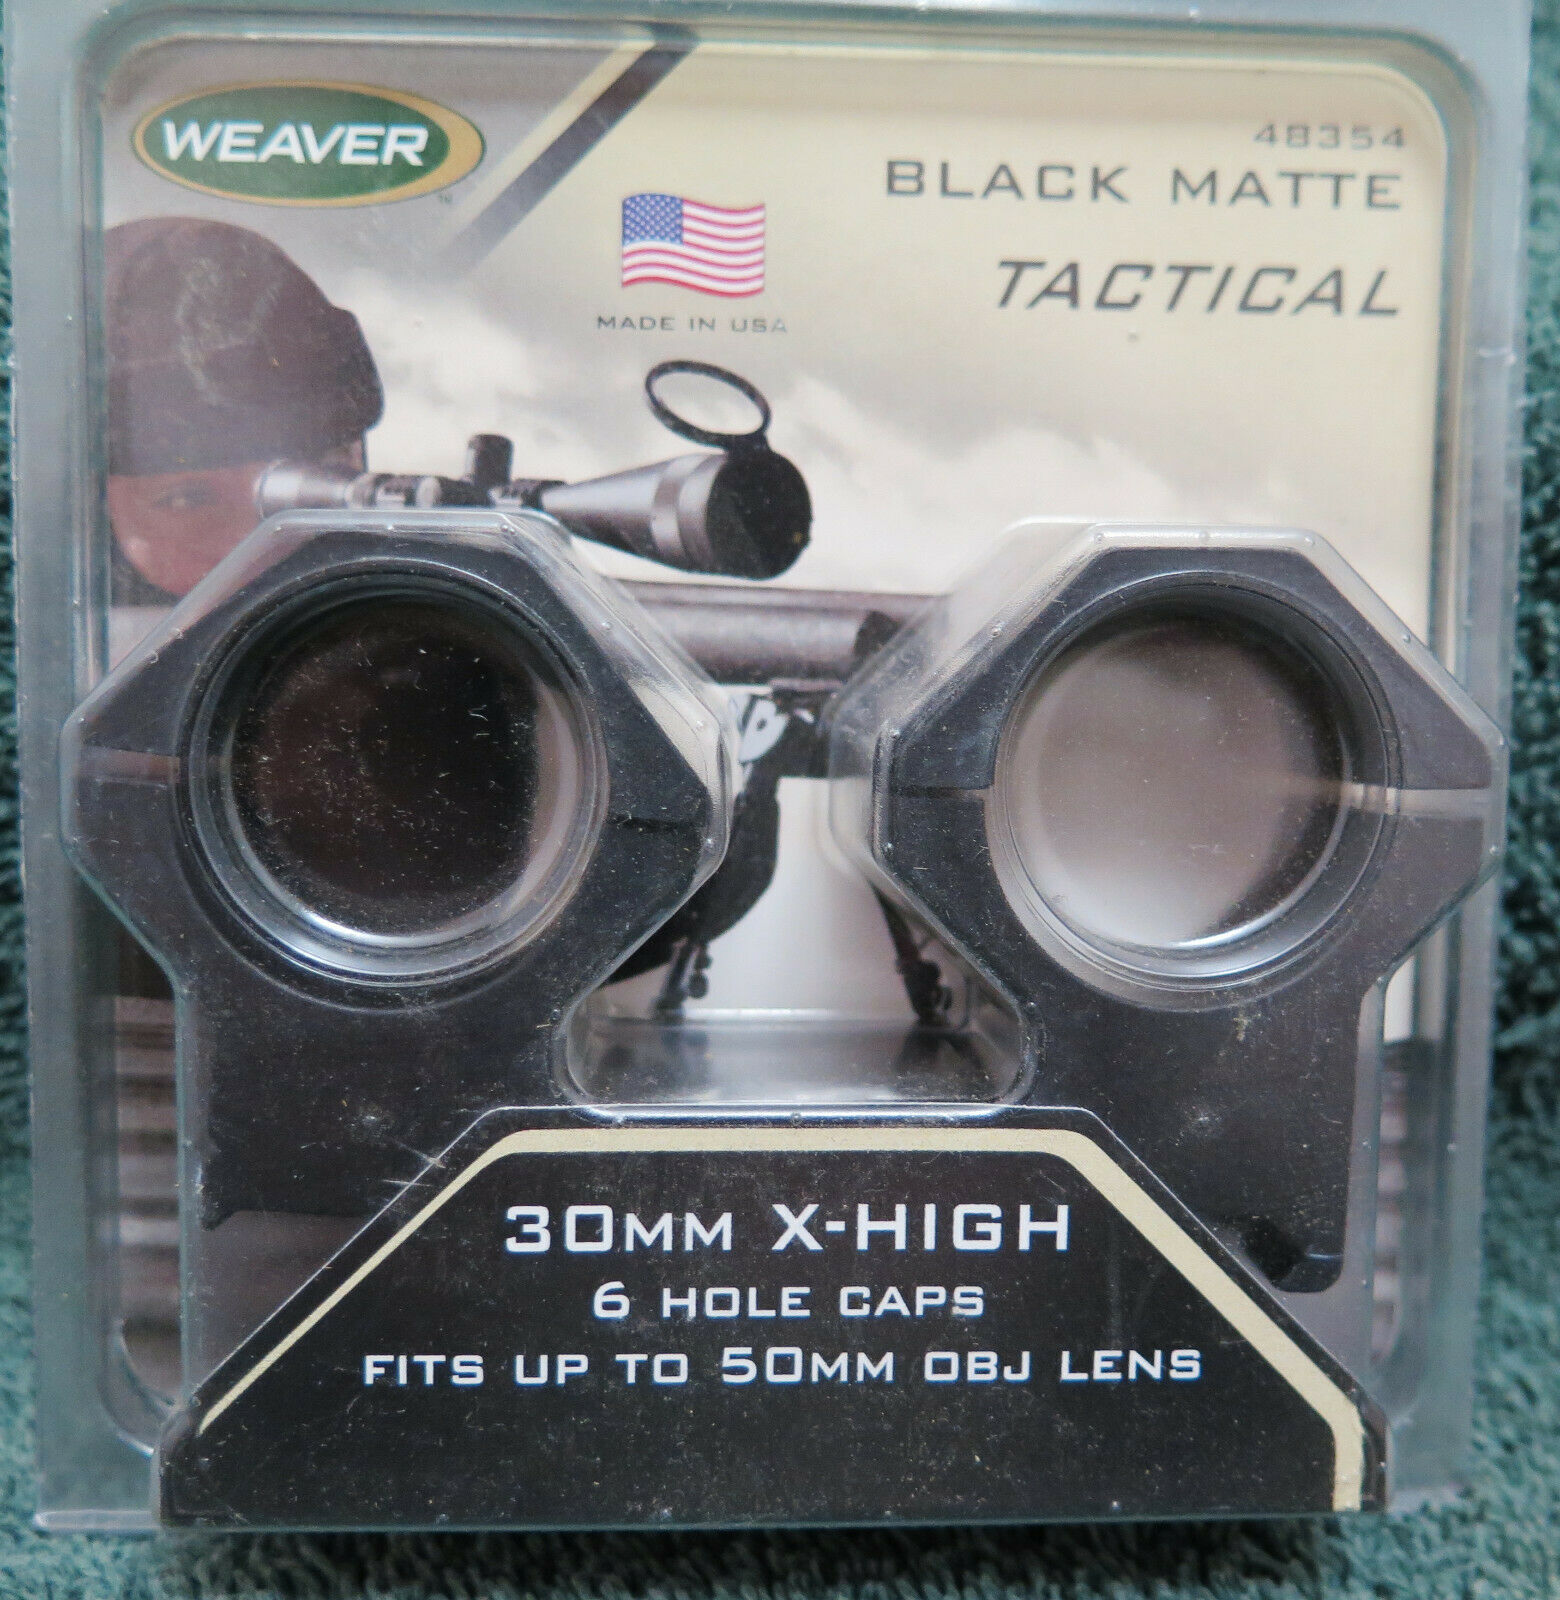 Weaver 48354 Tactical Ring 30mm Extra High Matte 6-Hole WV48354